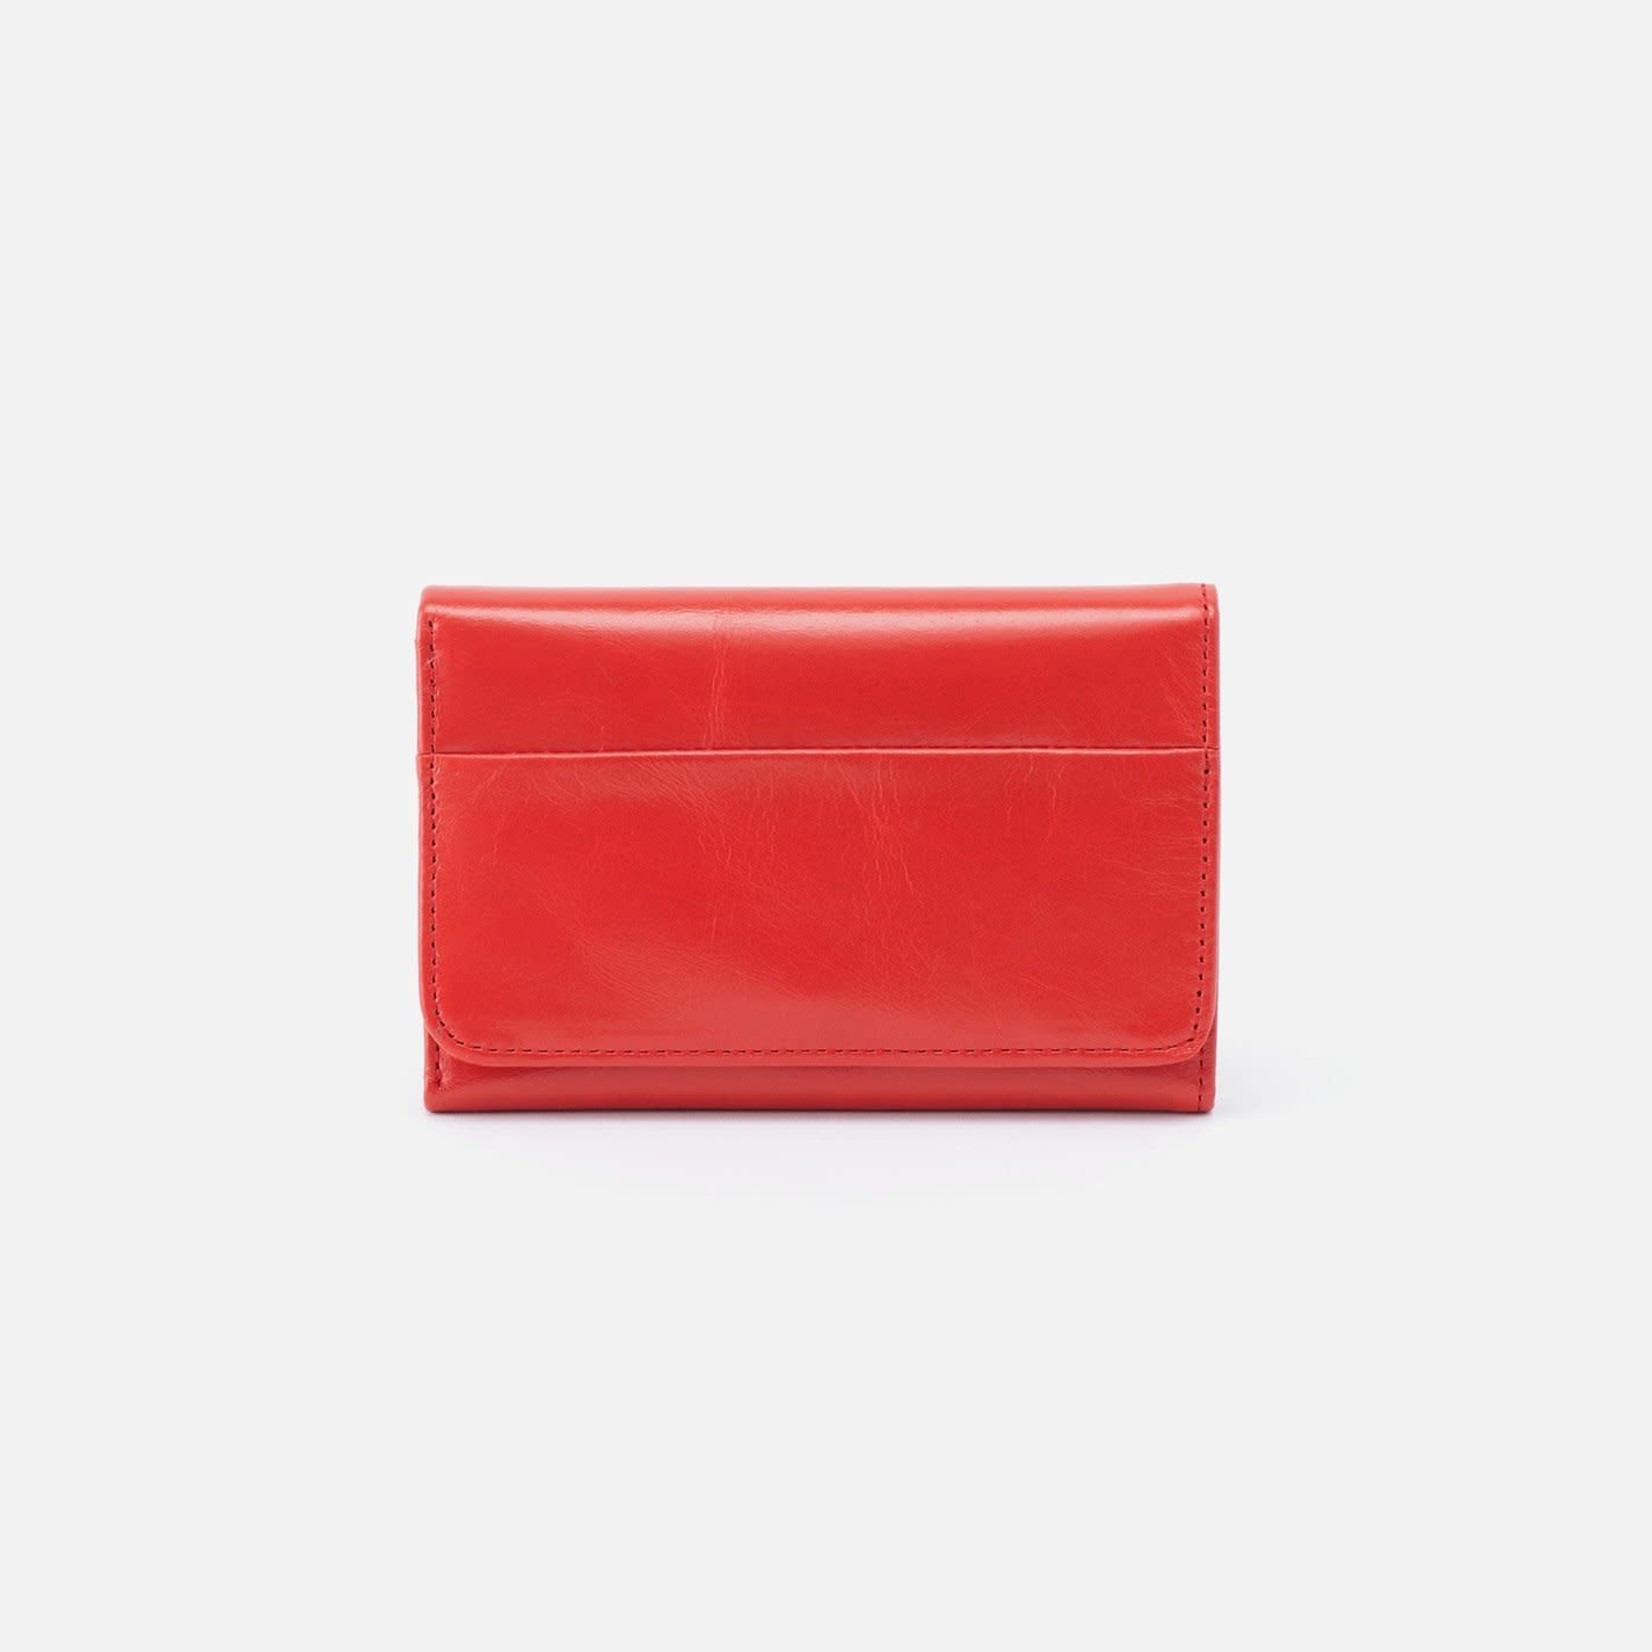 HOBO Jill Small Soft Leather Trifold Wallet - Rio